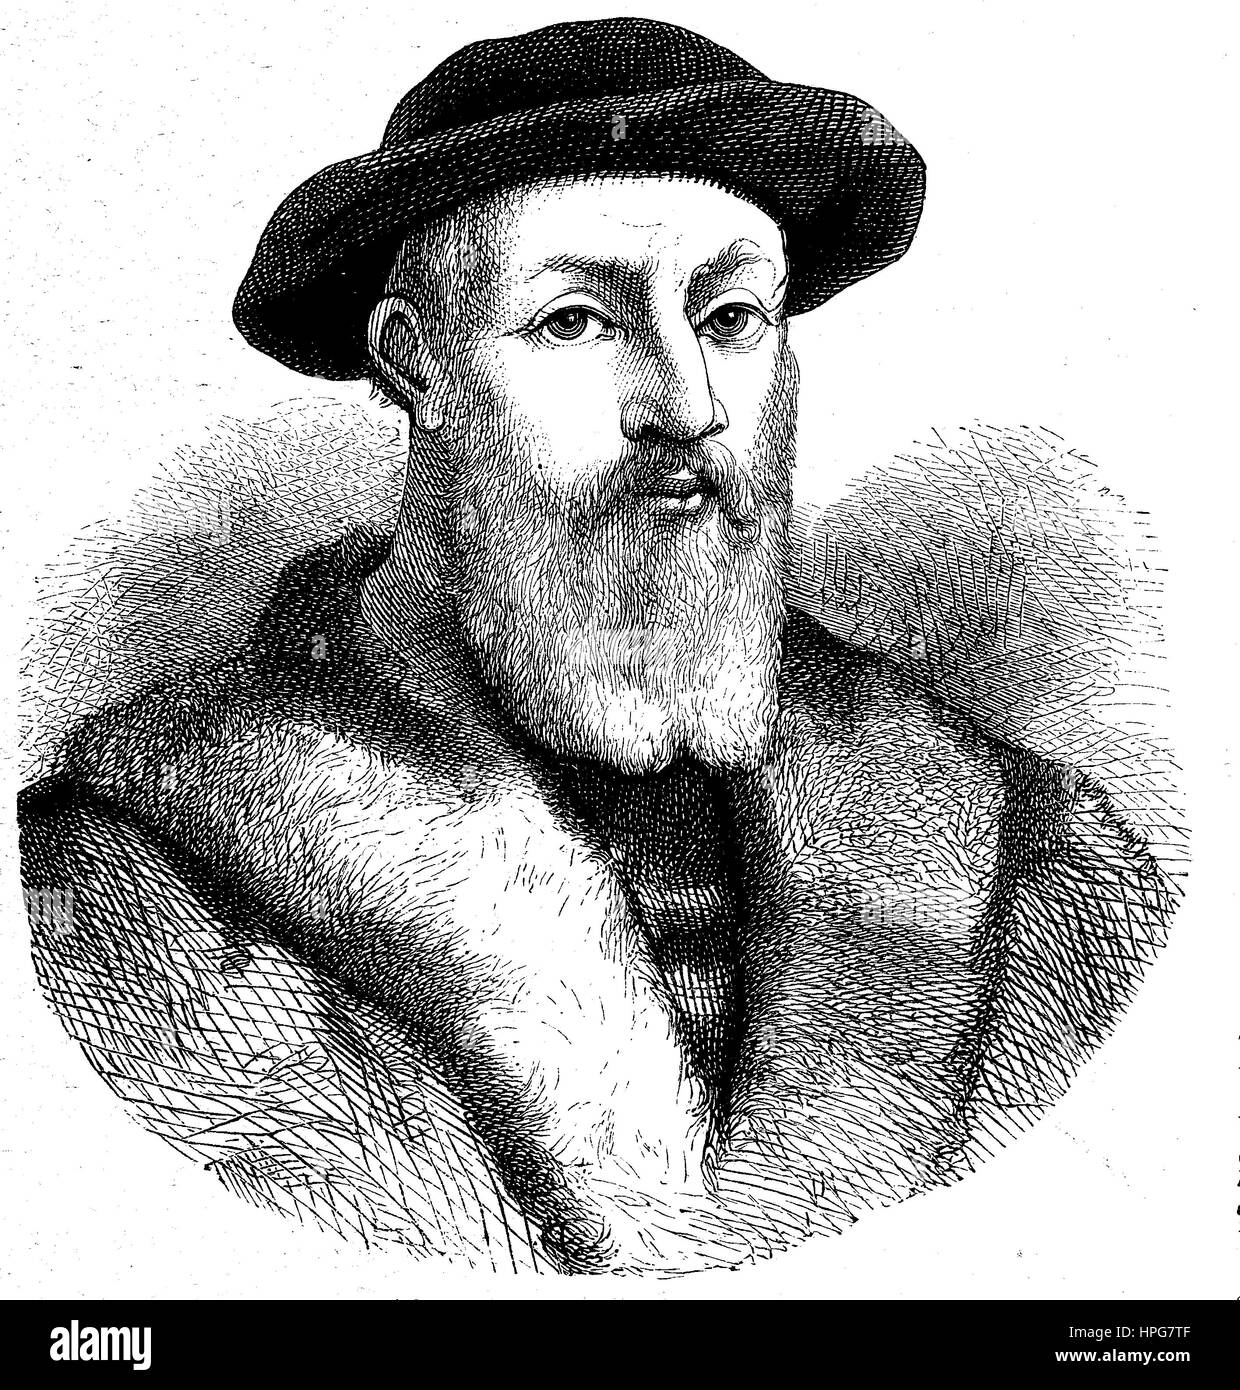 a biography of ferdinand magellan an explorer Ferdinand magellan was a portuguese-born navigator, who, by way of attempting to reach the spice-rich south-east asia, initiated the circumnavigation of the earth after serving as a soldier in the portuguese fleet for a couple of years.